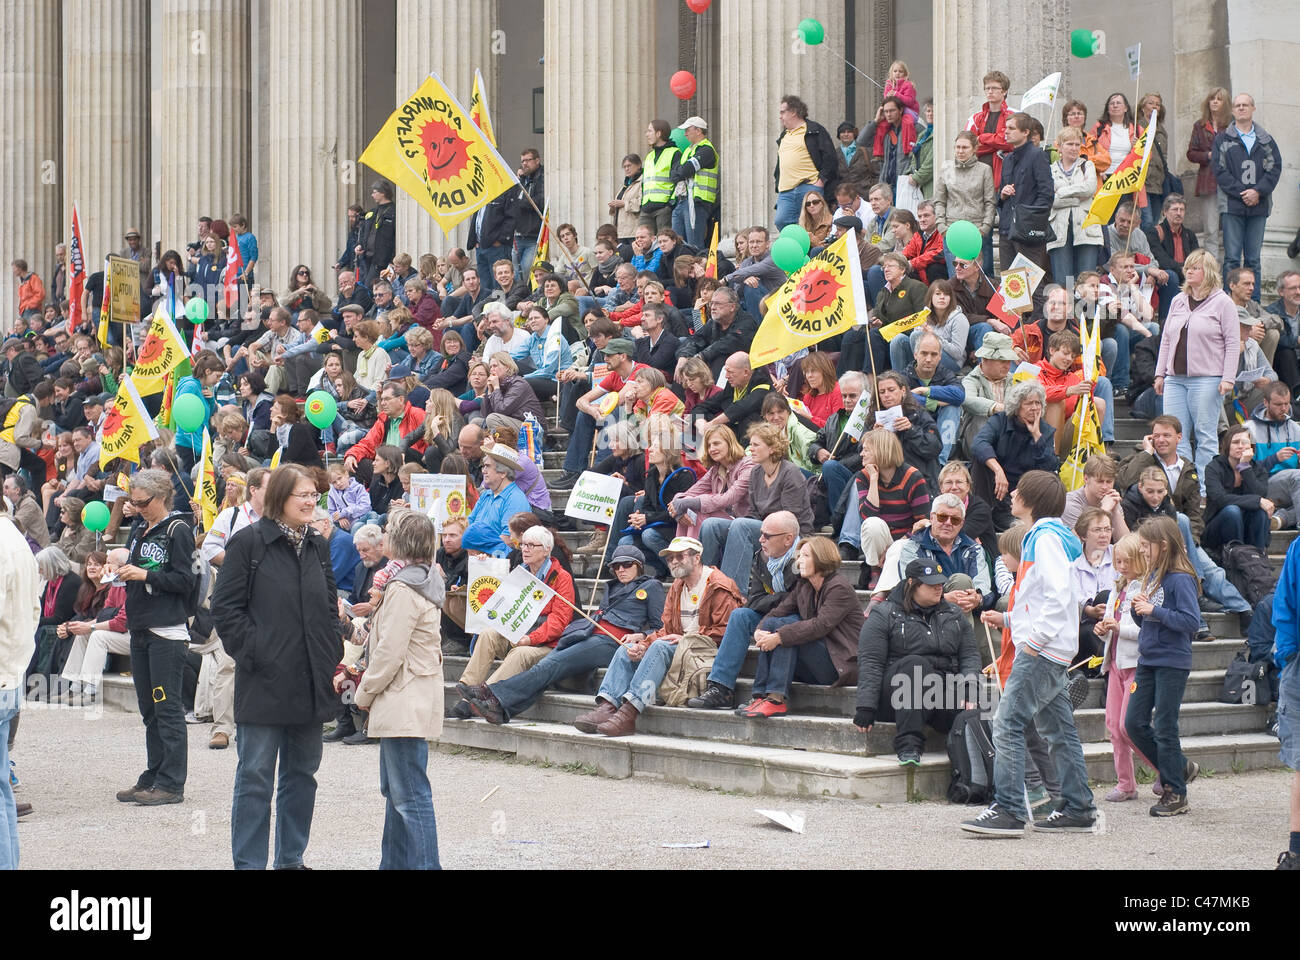 MUNICH, GERMANY - MAY 28: Protesters at the 'Anti Atomic Energy' rally, which was held at the Koenigsplatz - Stock Image